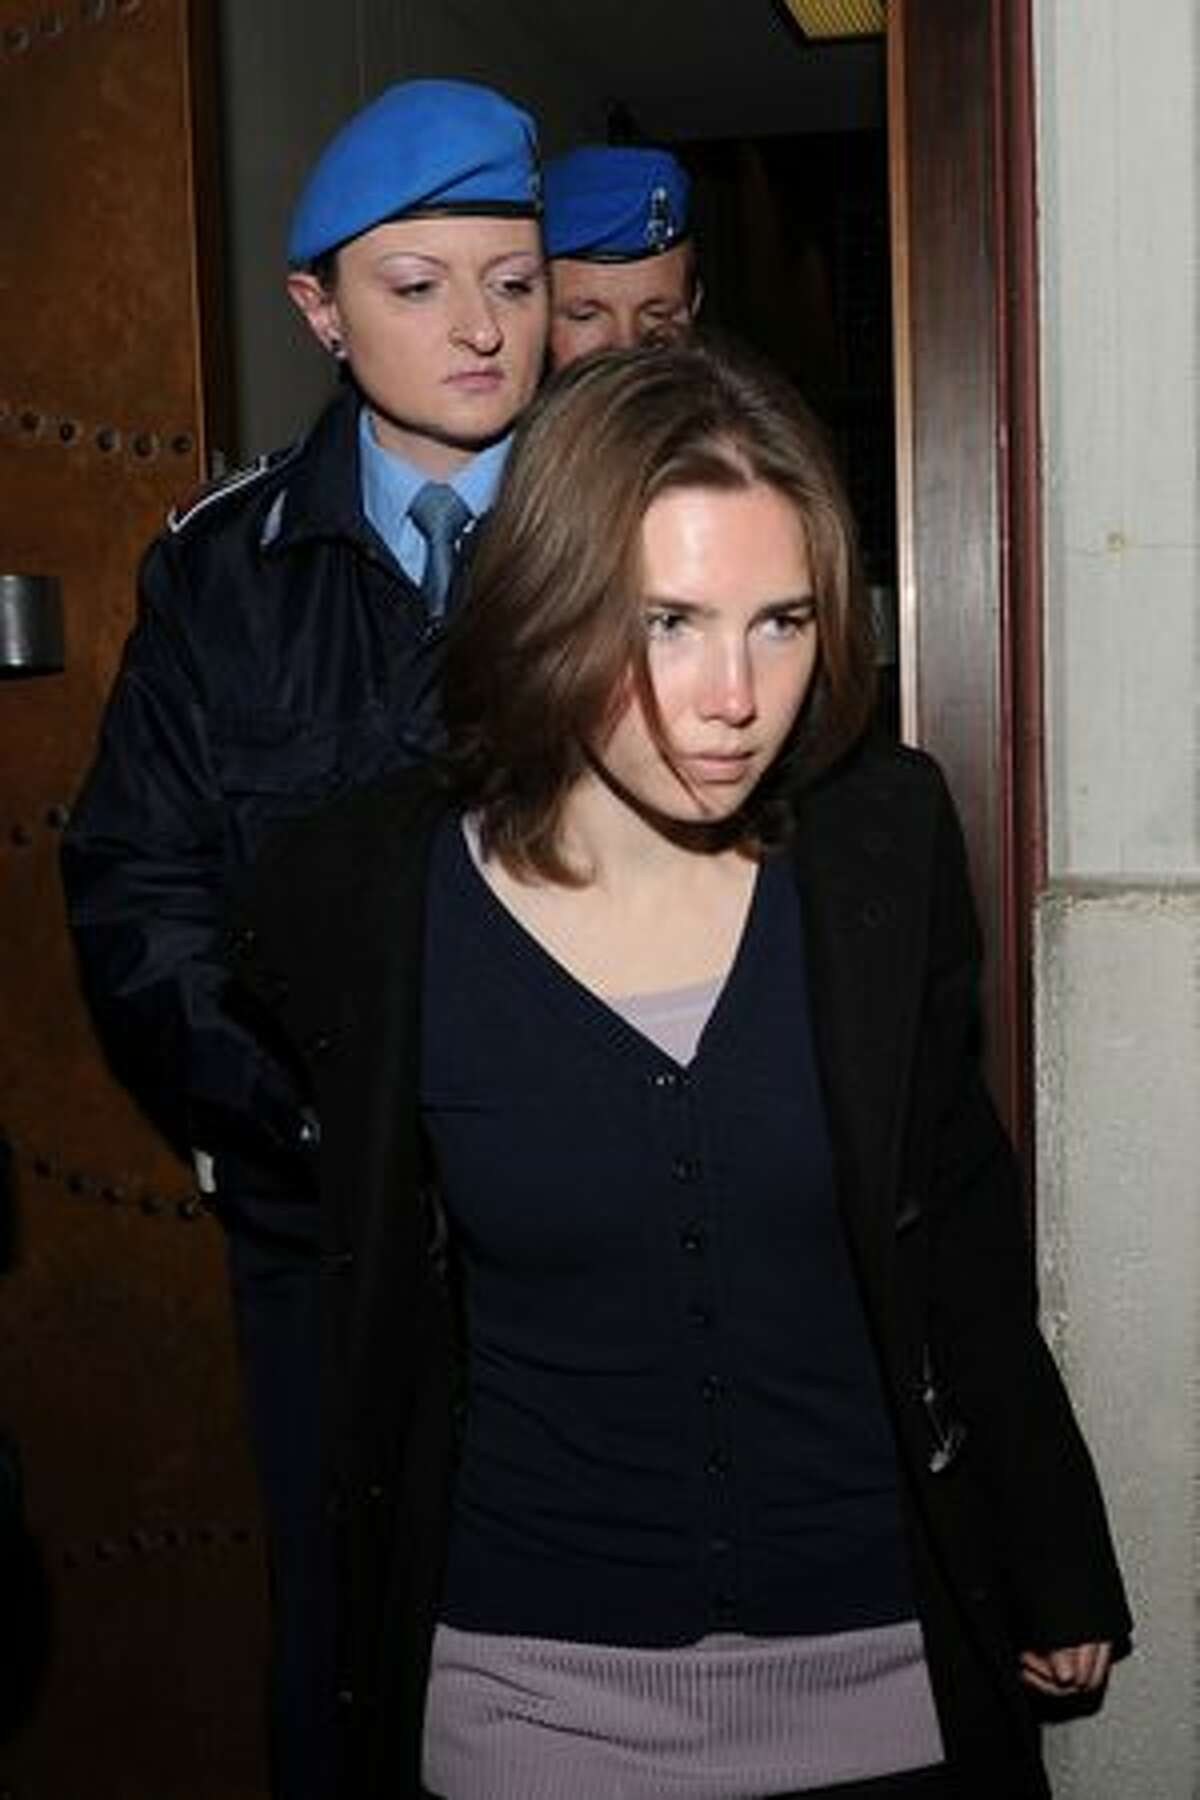 Amanda Knox attends her appeal hearing to reconsider her guilty verdict in the murder of Meredith Kercher, on Saturday, March 12, 2011 in Perugia, Italy. Knox's original trial took place in December 2009 when she was given 26 years while her former boyfriend Italian Raffaele Sollecito was given 25 years after they were both found guilty of the murder of Kercher in November 2007.